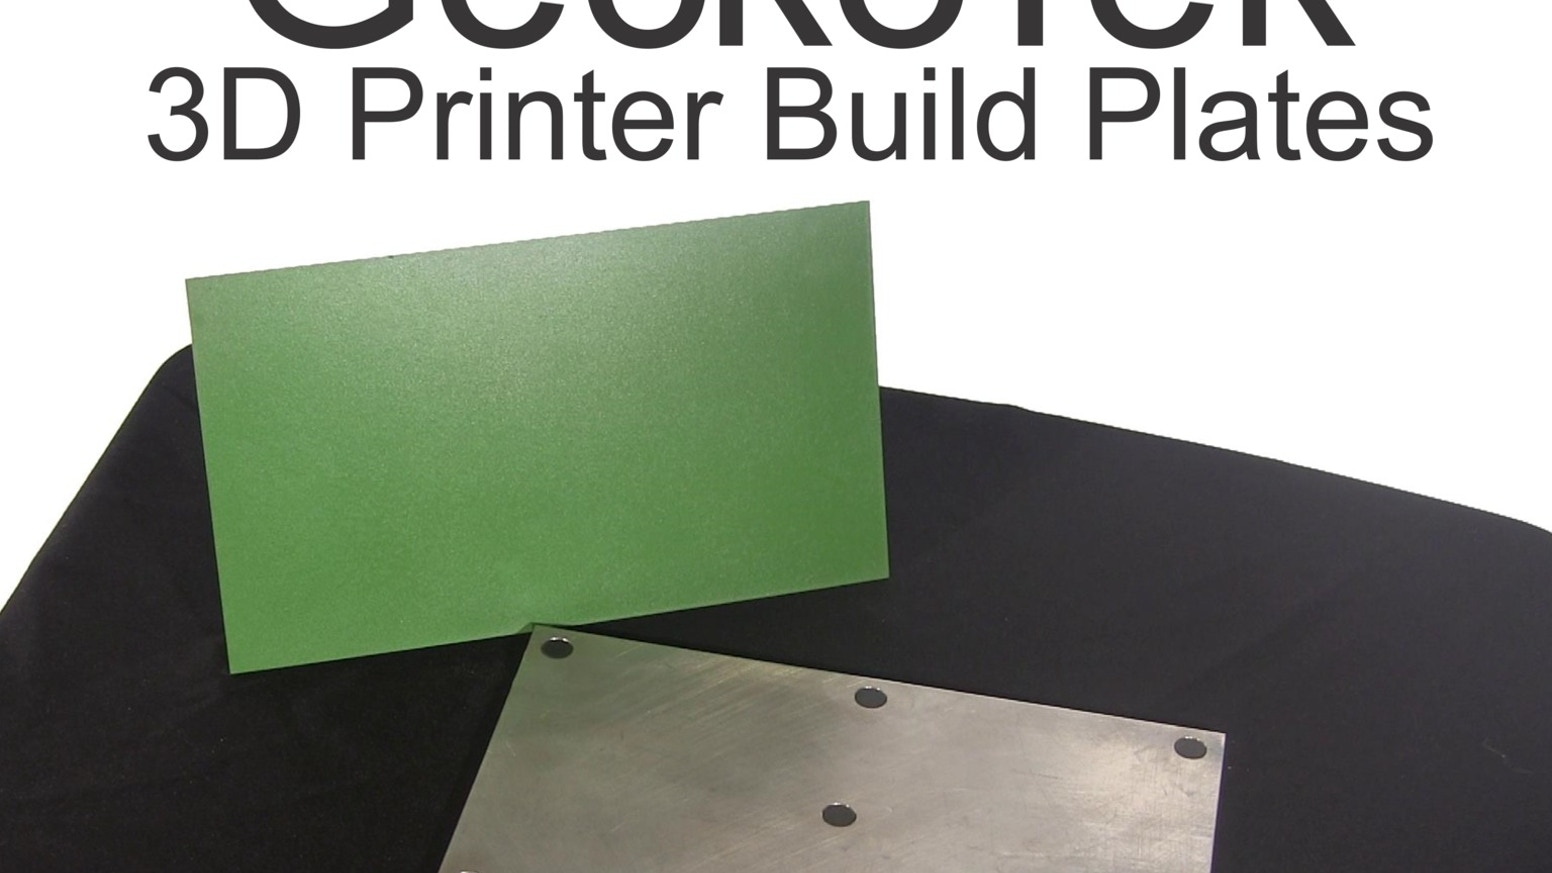 Check out GeckoTeks Newsest Build surface that fits any 3D Printer.